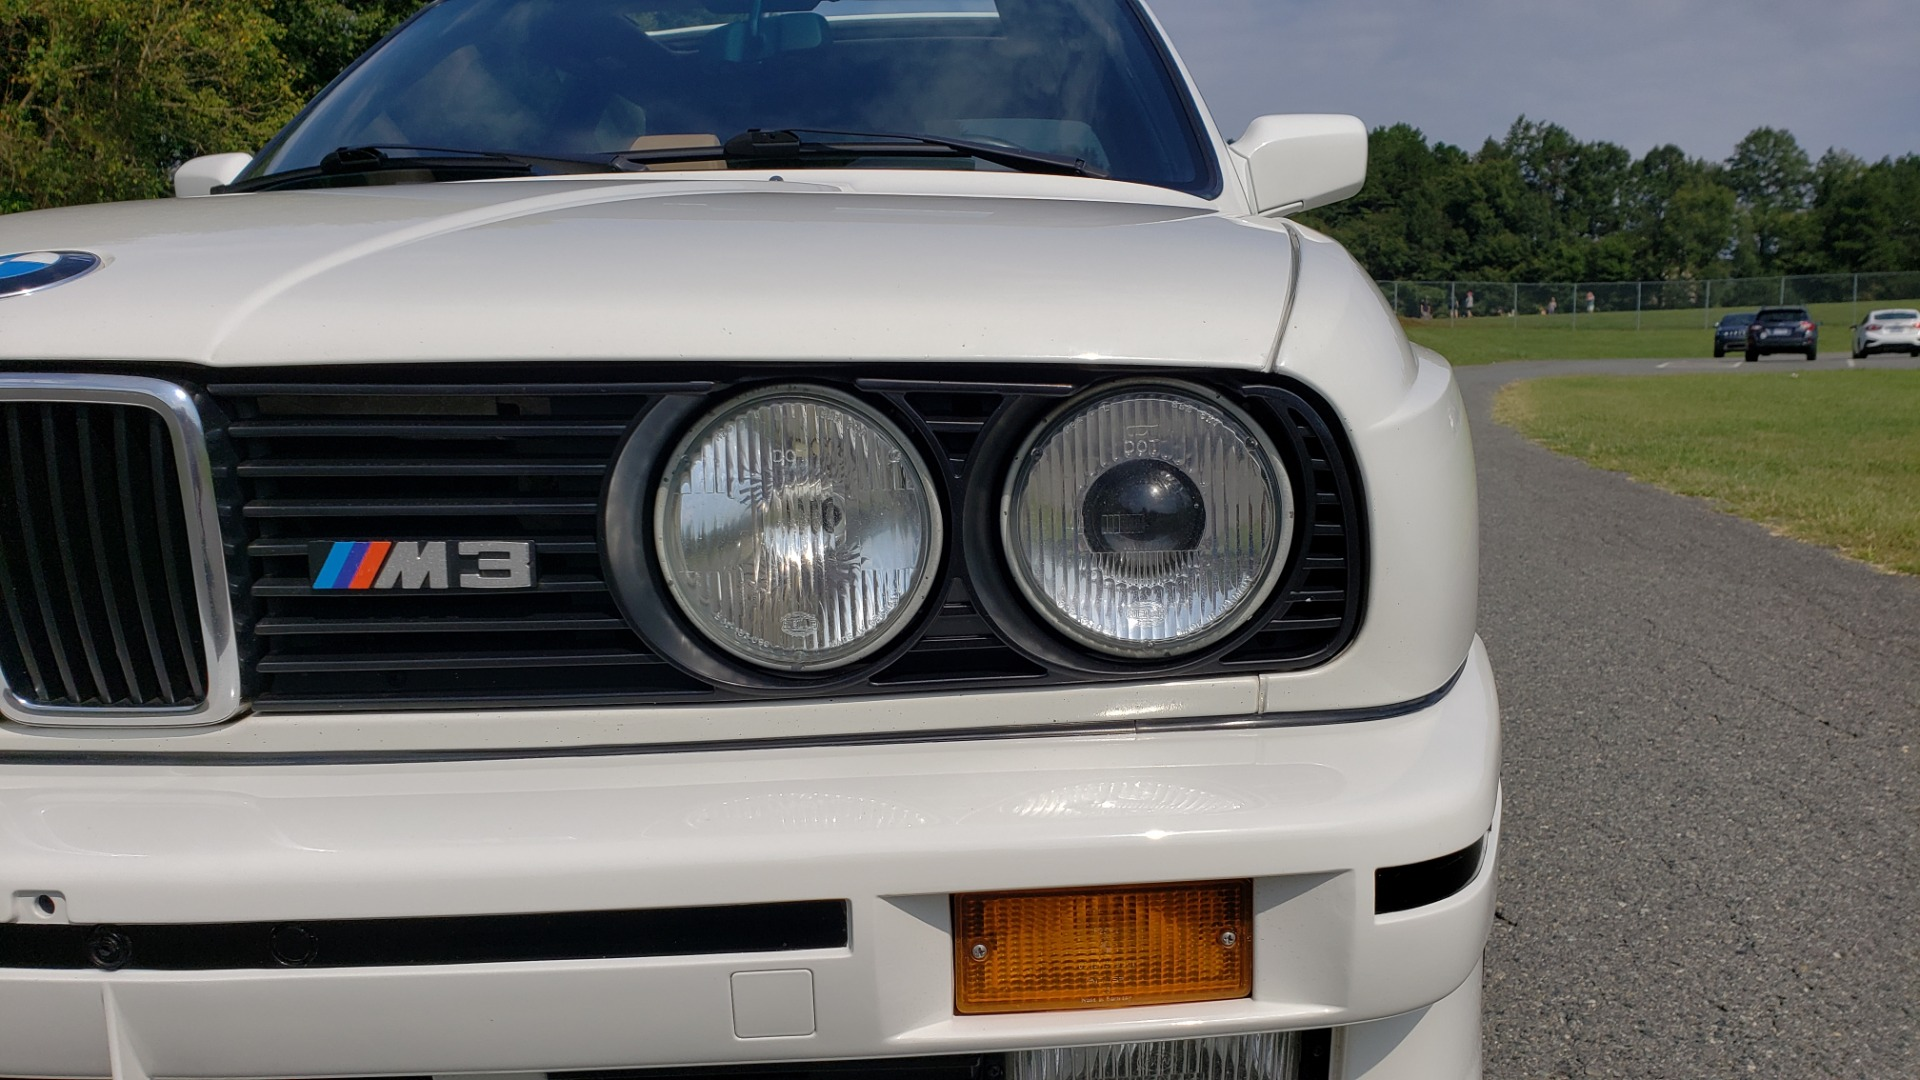 Used 1989 BMW M3 COUPE 2DR / 5-SPEED MAN / LOW MILES / SUPER CLEAN for sale Sold at Formula Imports in Charlotte NC 28227 35